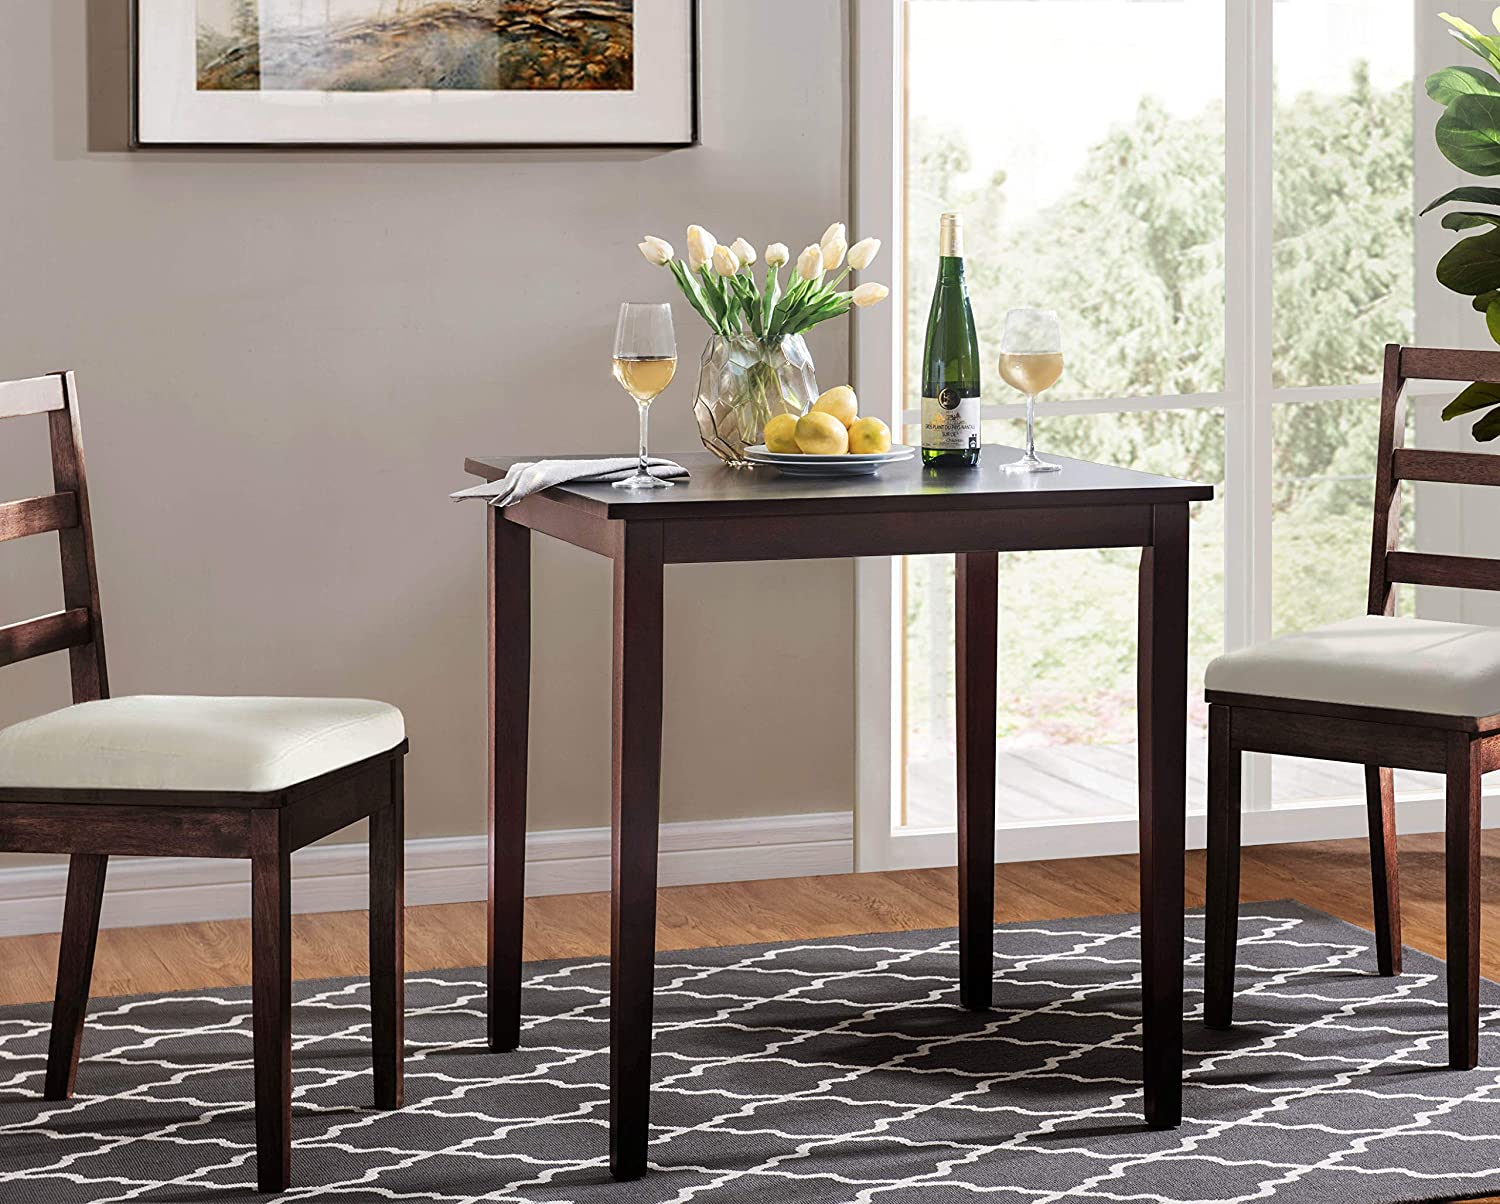 2L Lifestyle Ashland Square Dinning Table,Brown